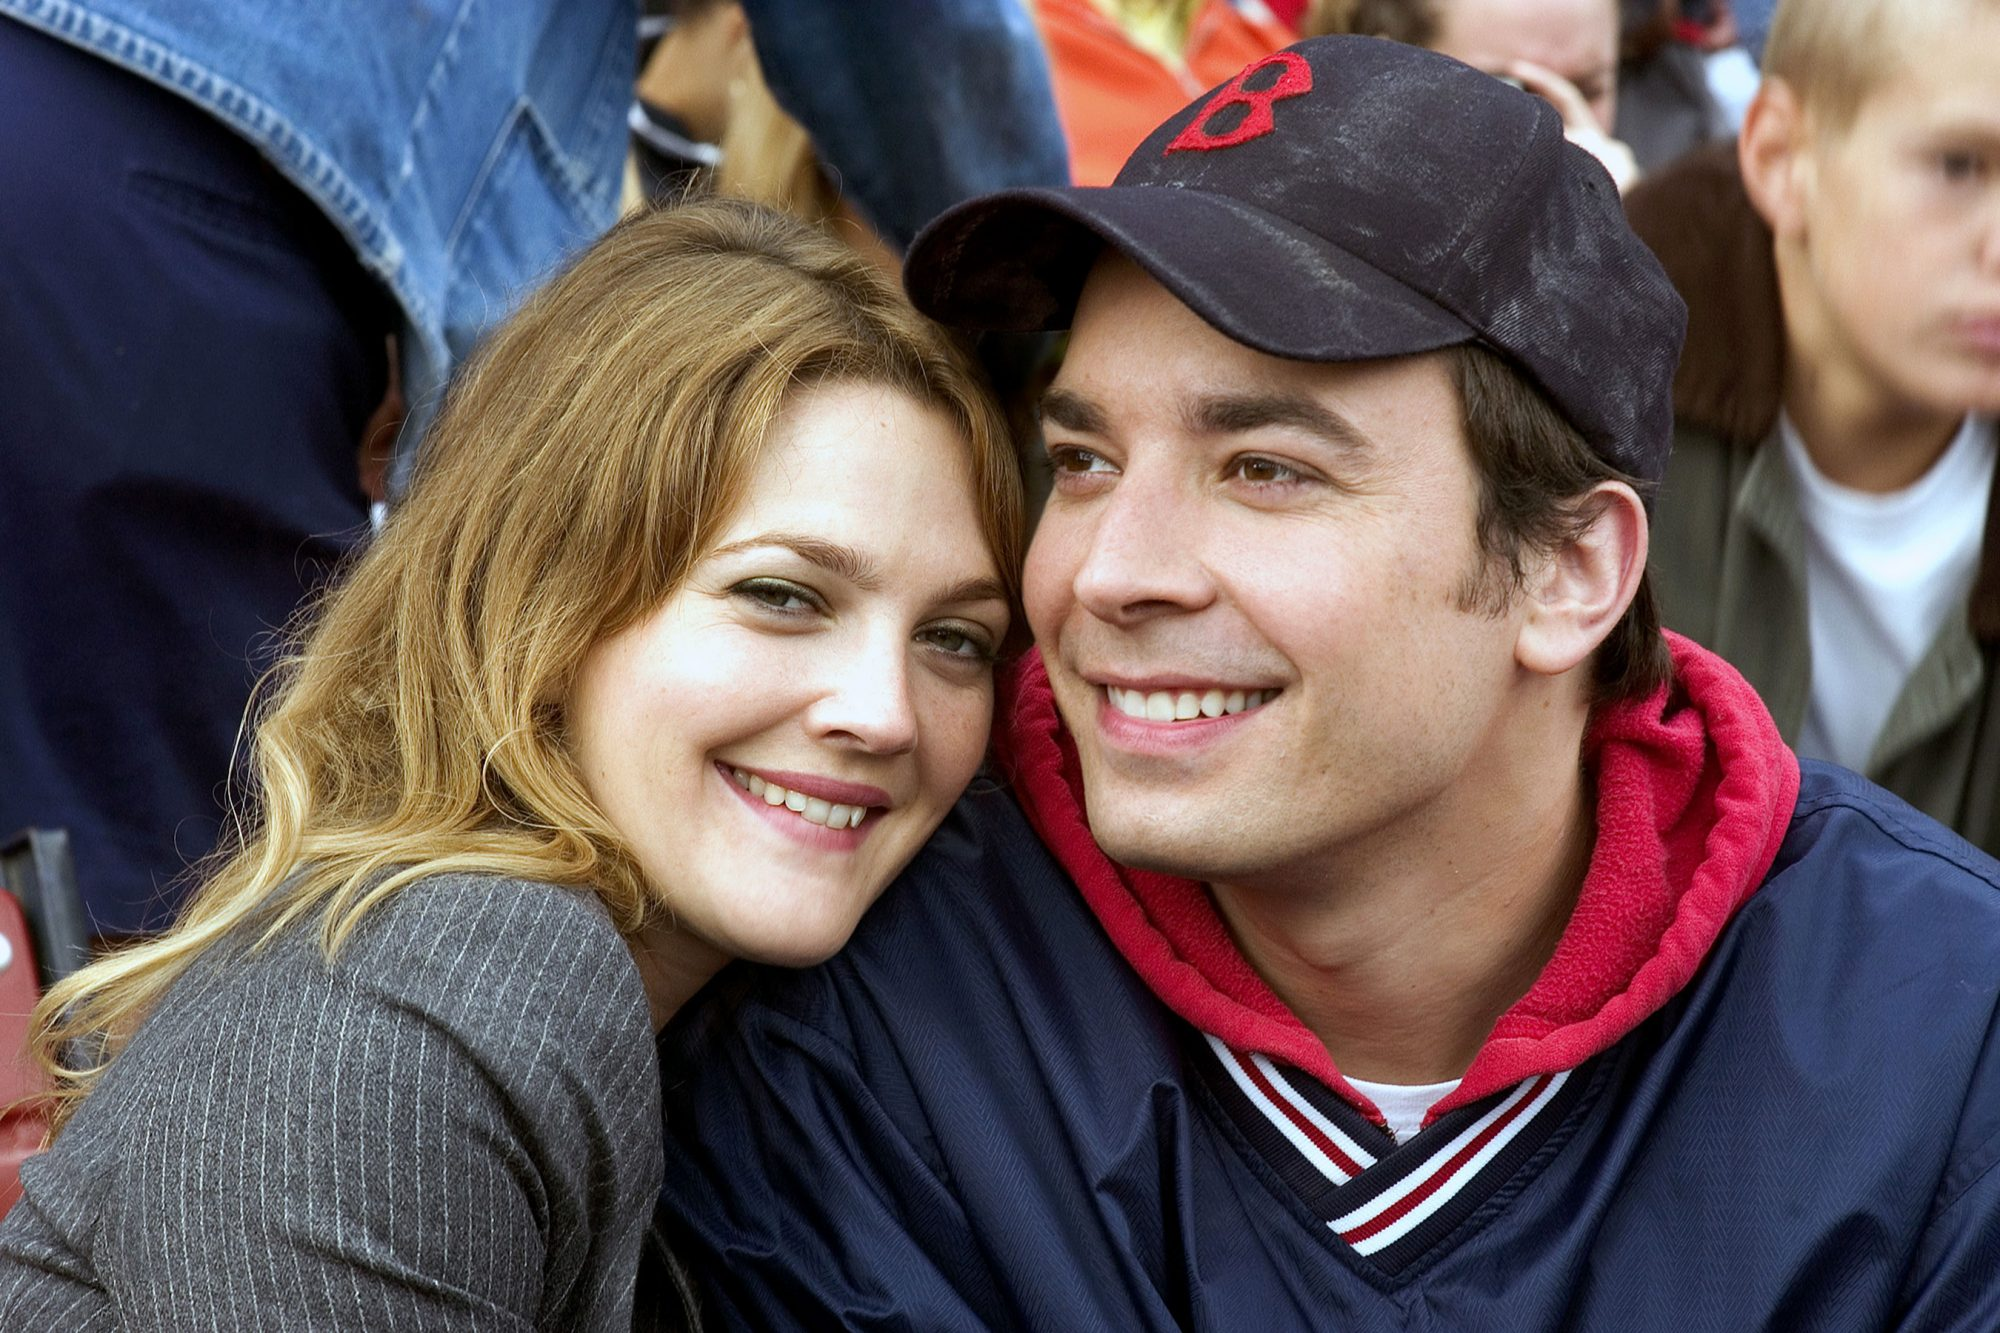 FEVER PITCH, Drew Barrymore, Jimmy Fallon,  2005, TM & Copyright (c) 20th Century Fox Film Corp. All